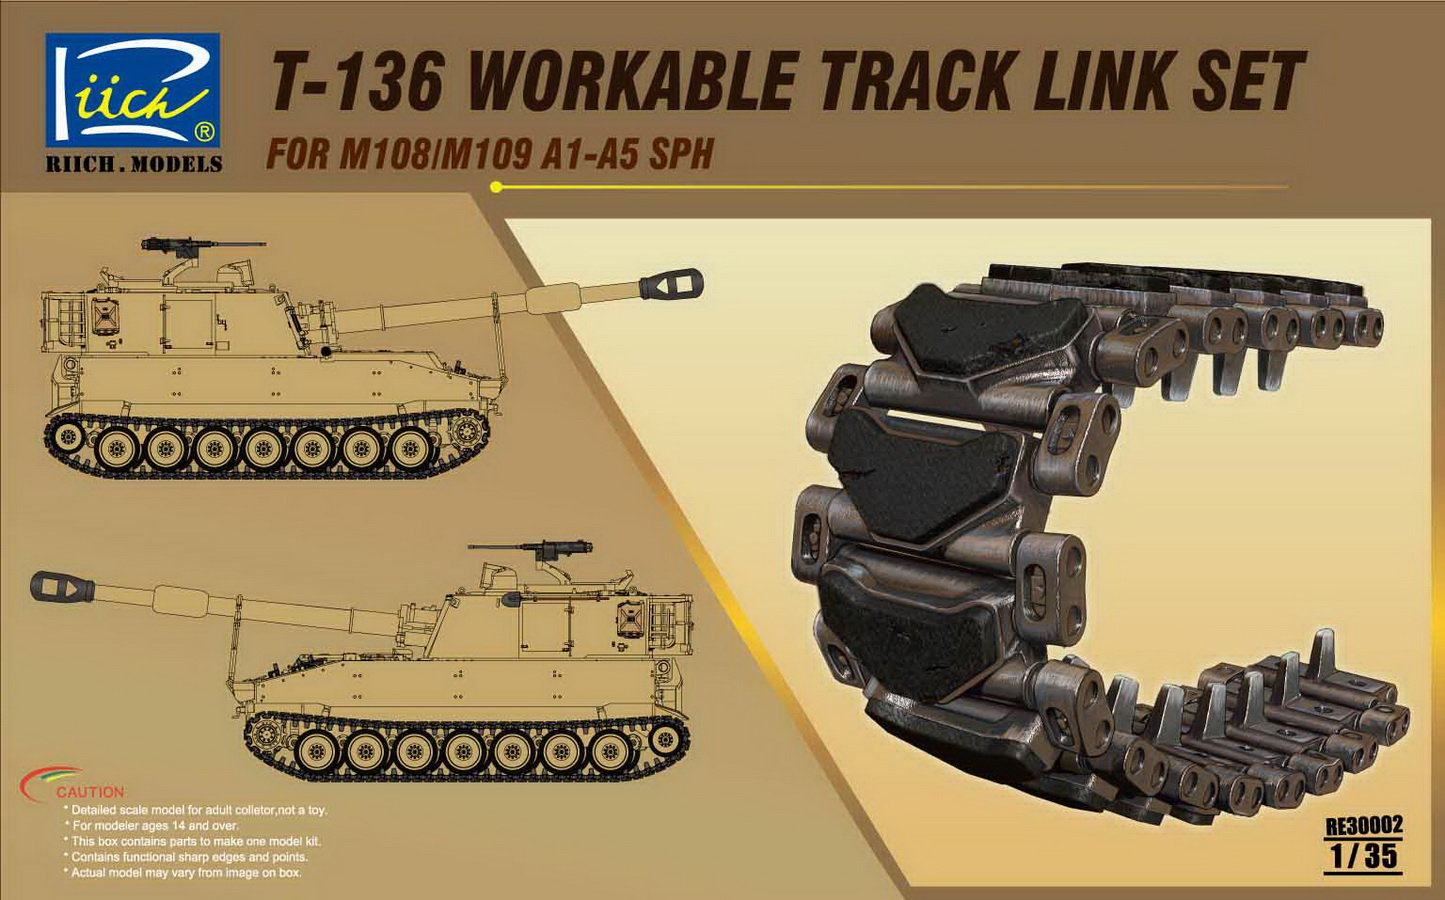 Riich 1/35 T-136 Workable Track set for M108/M109A1-A5 SPH